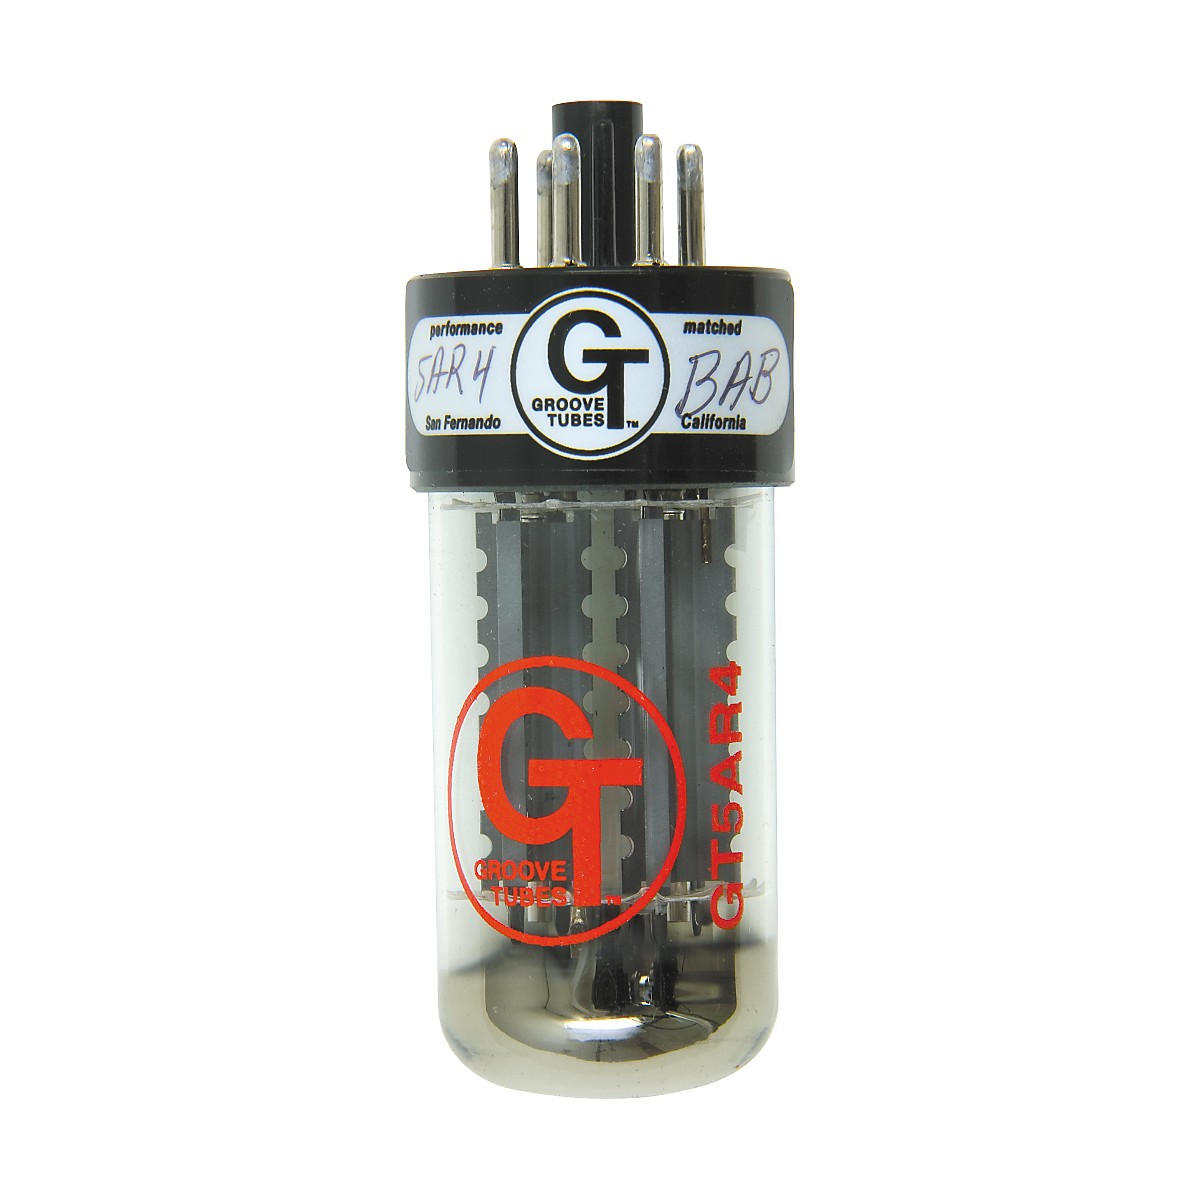 Groove Tubes Gold Series GT-5AR4/GZ34 Rectifier Tube